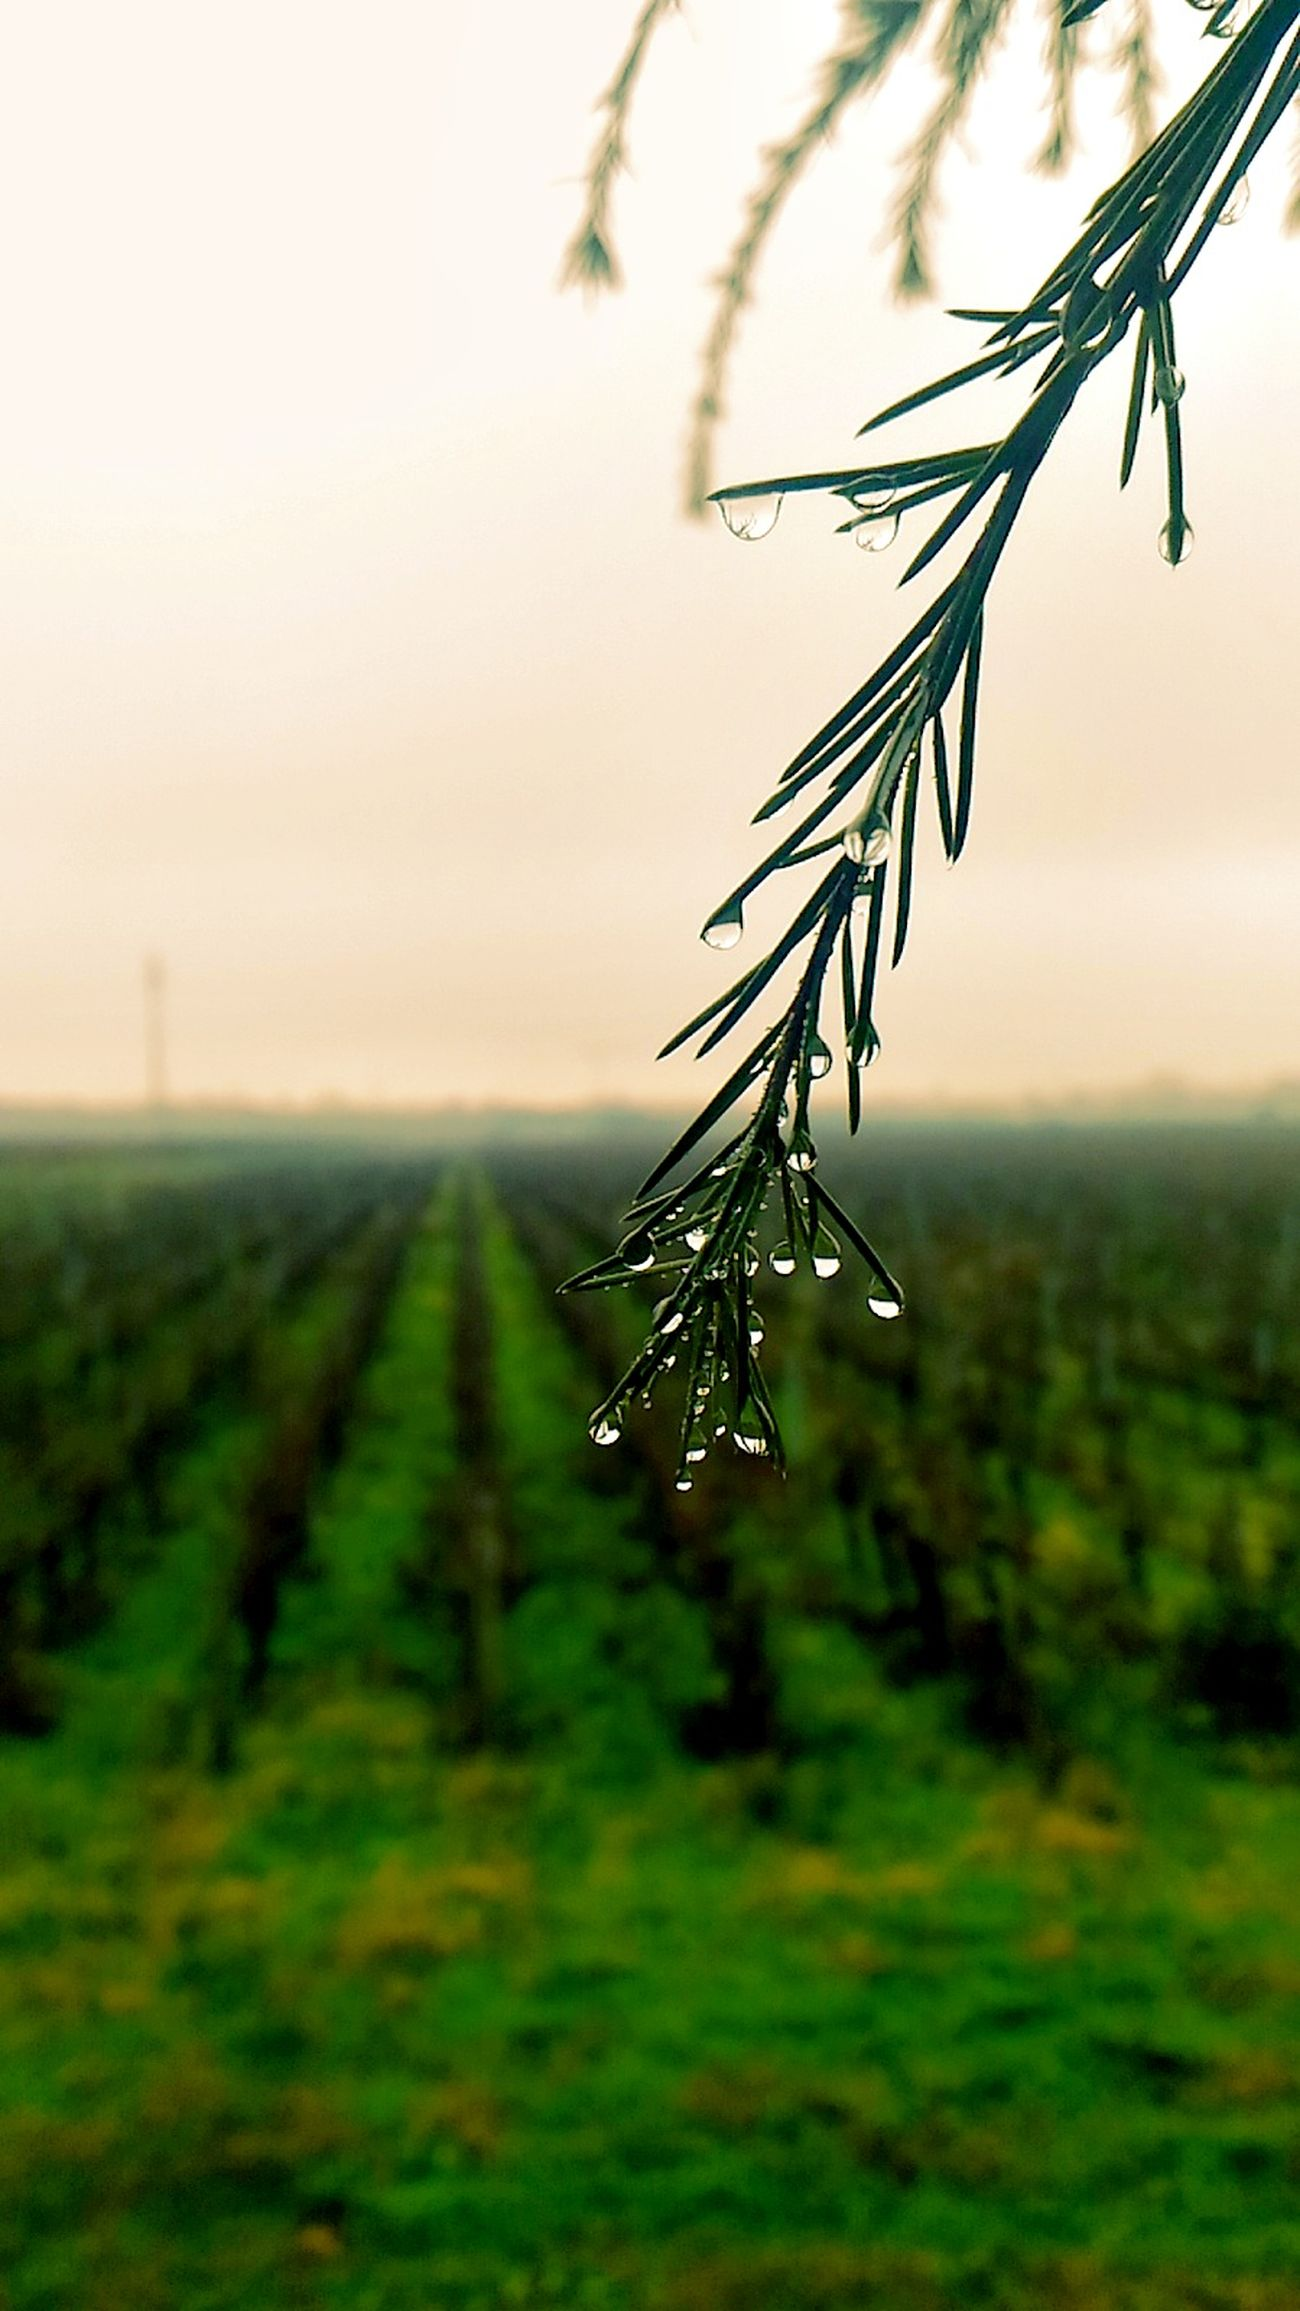 Nature Landscape Wine Water Waterdrops Ice Like4like Follow4follow Photooftheday Green Green Nature